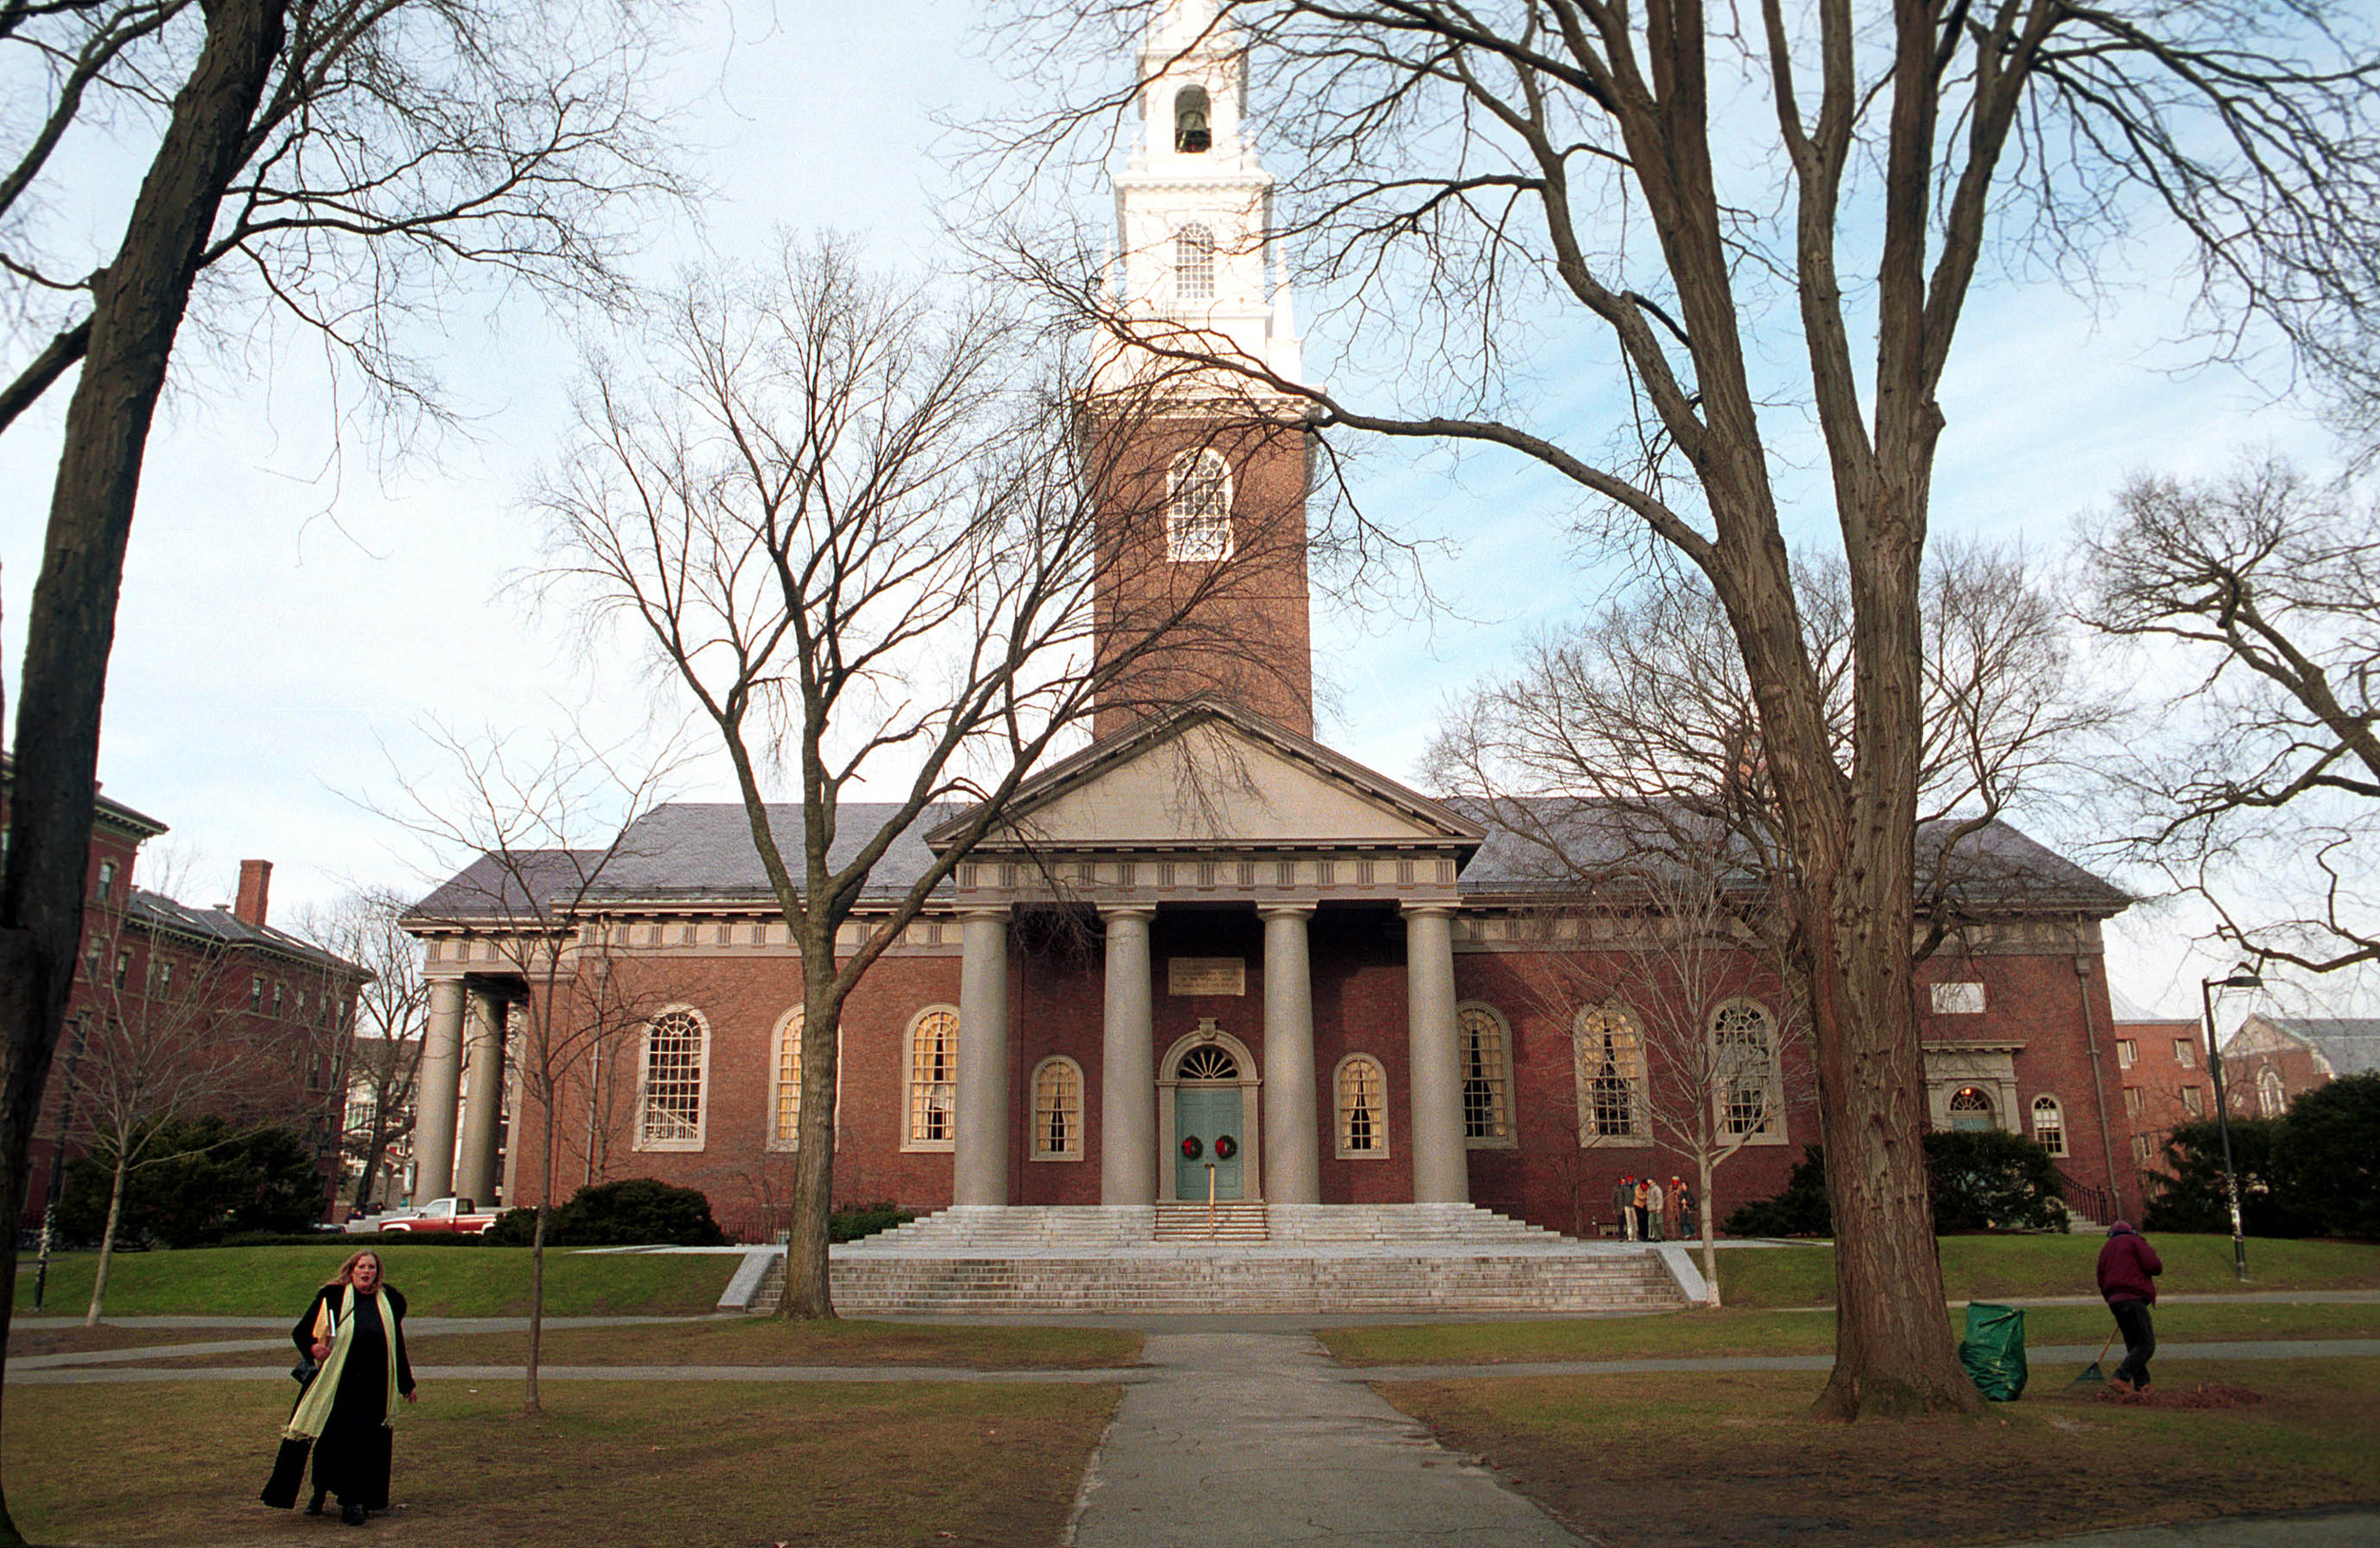 What does it take to get into an Ivy League school like Harvard?